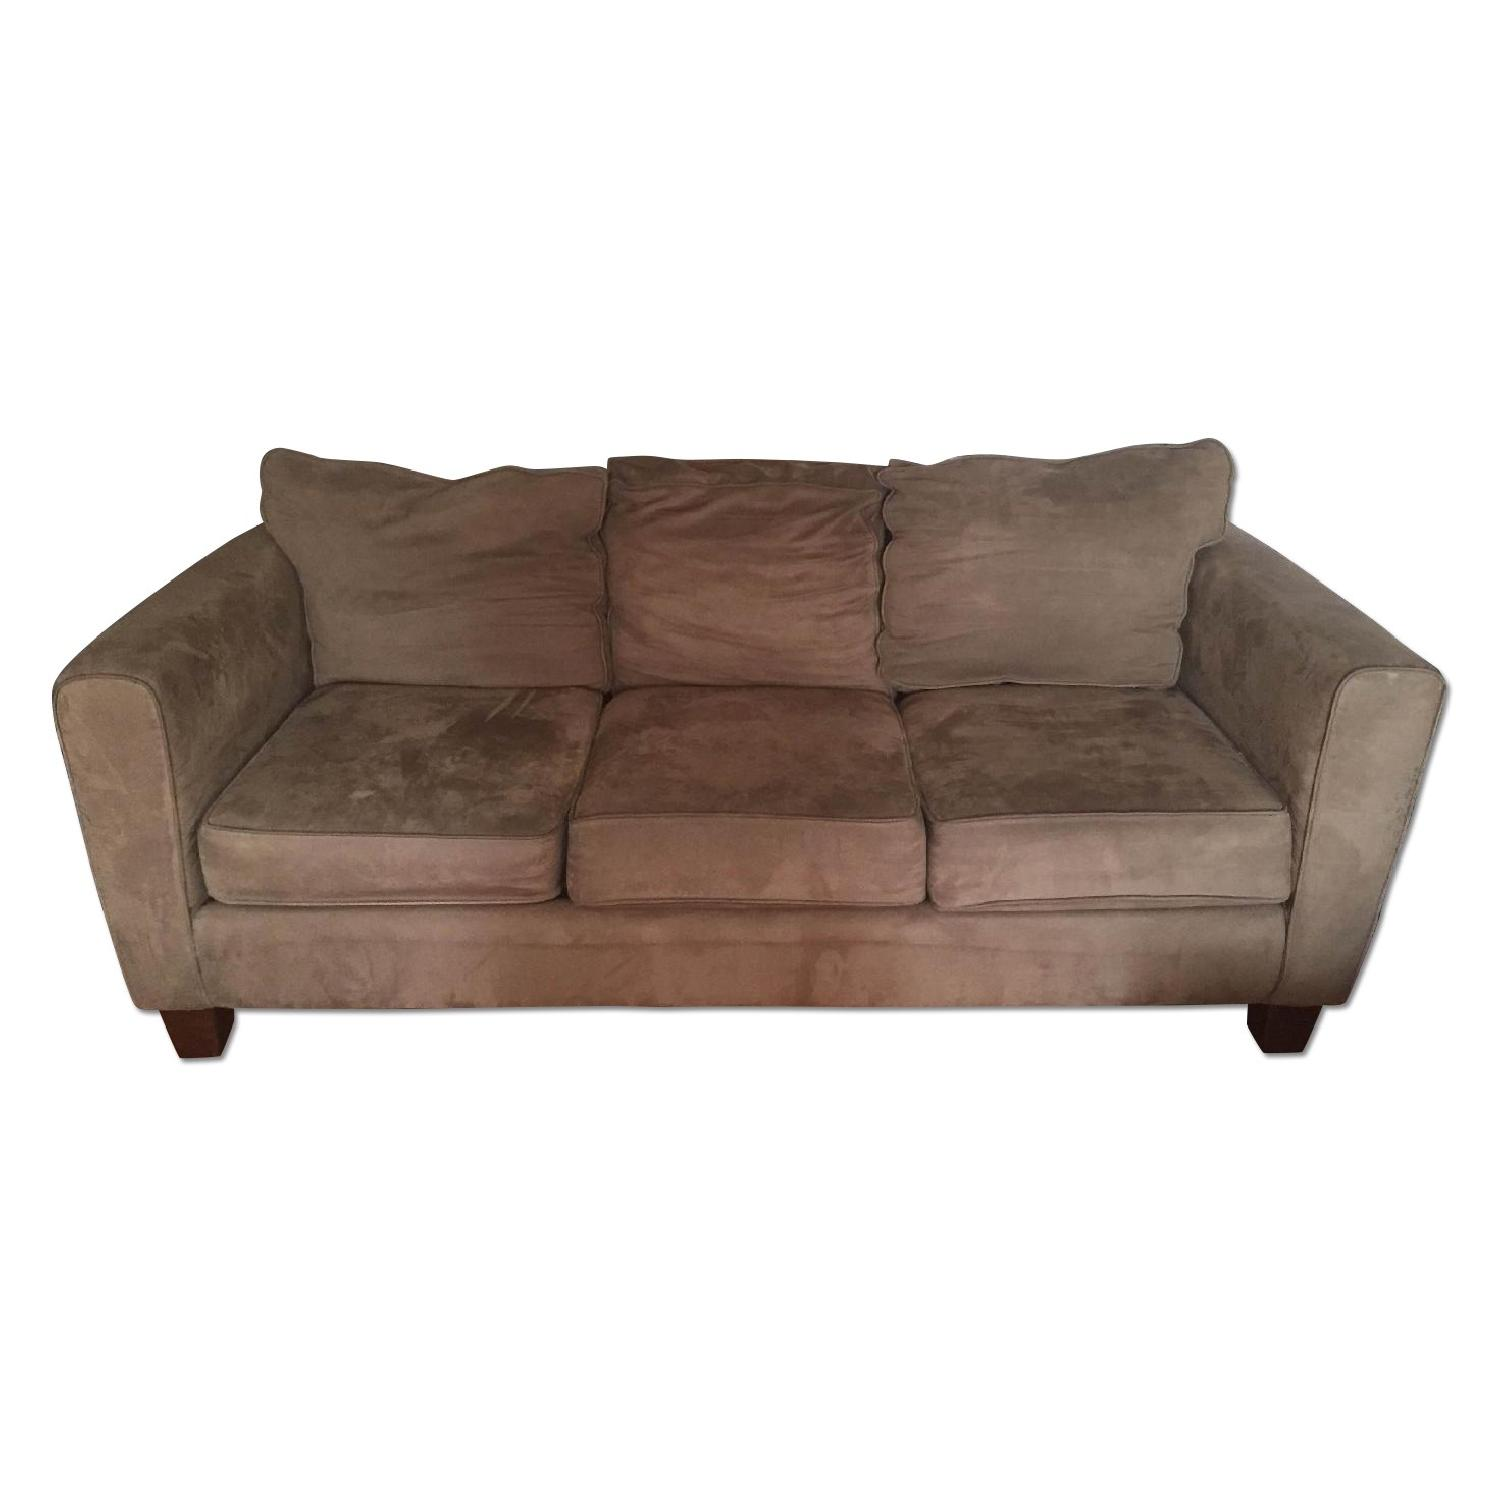 Olive Microsuede 3-Seater Couch & Ottoman - image-0